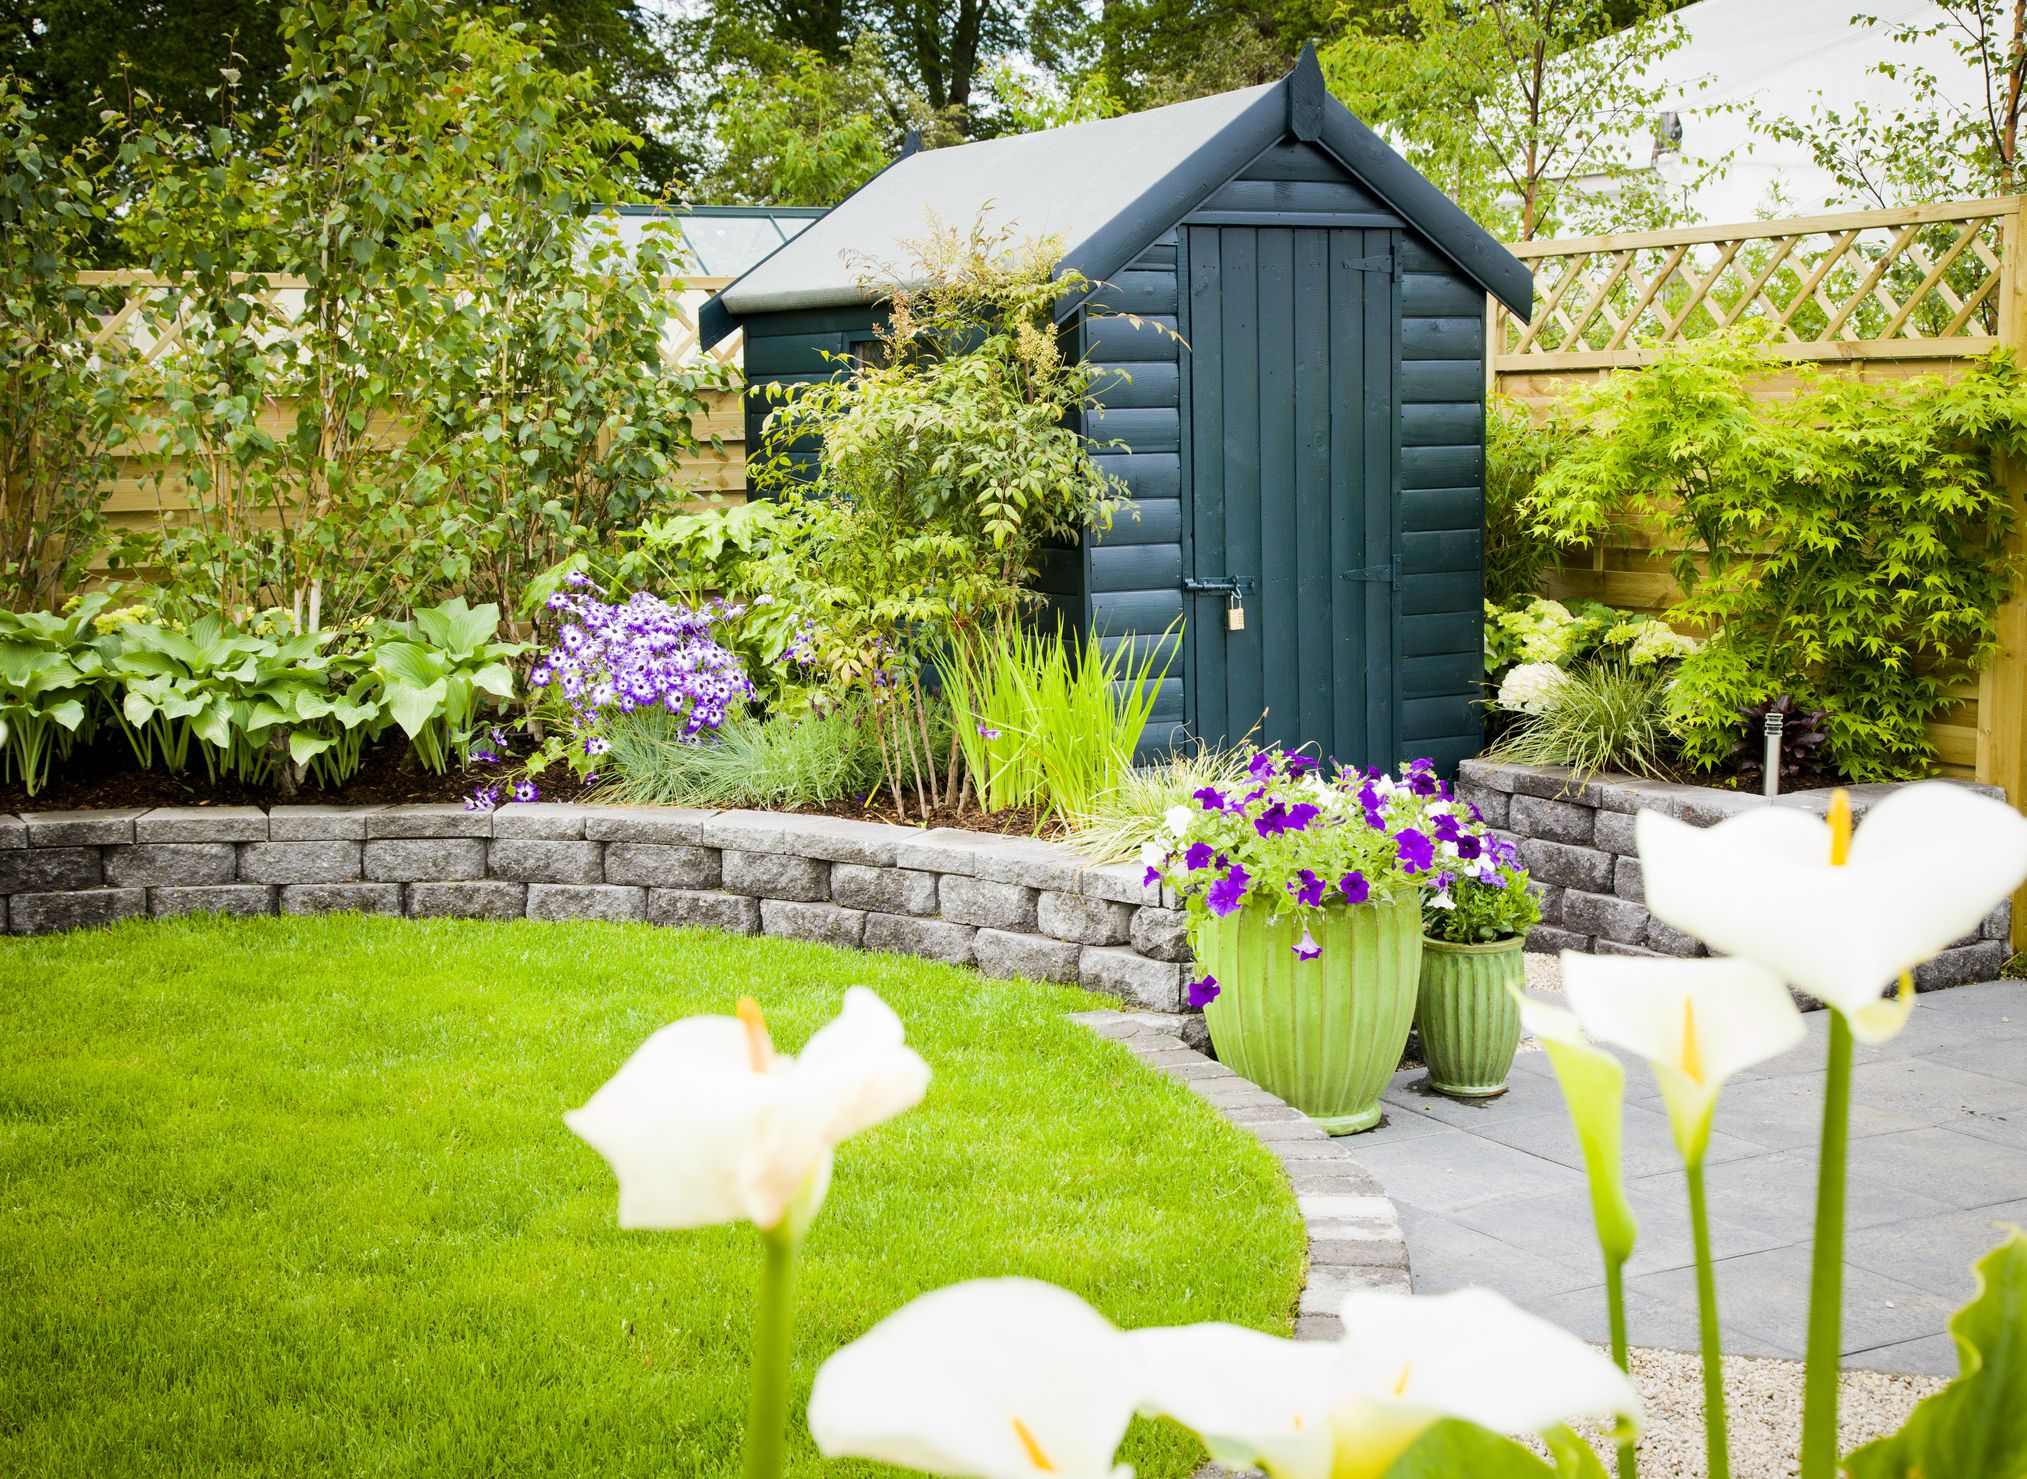 10 Considerations When Buying Outdoor Storage Sheds